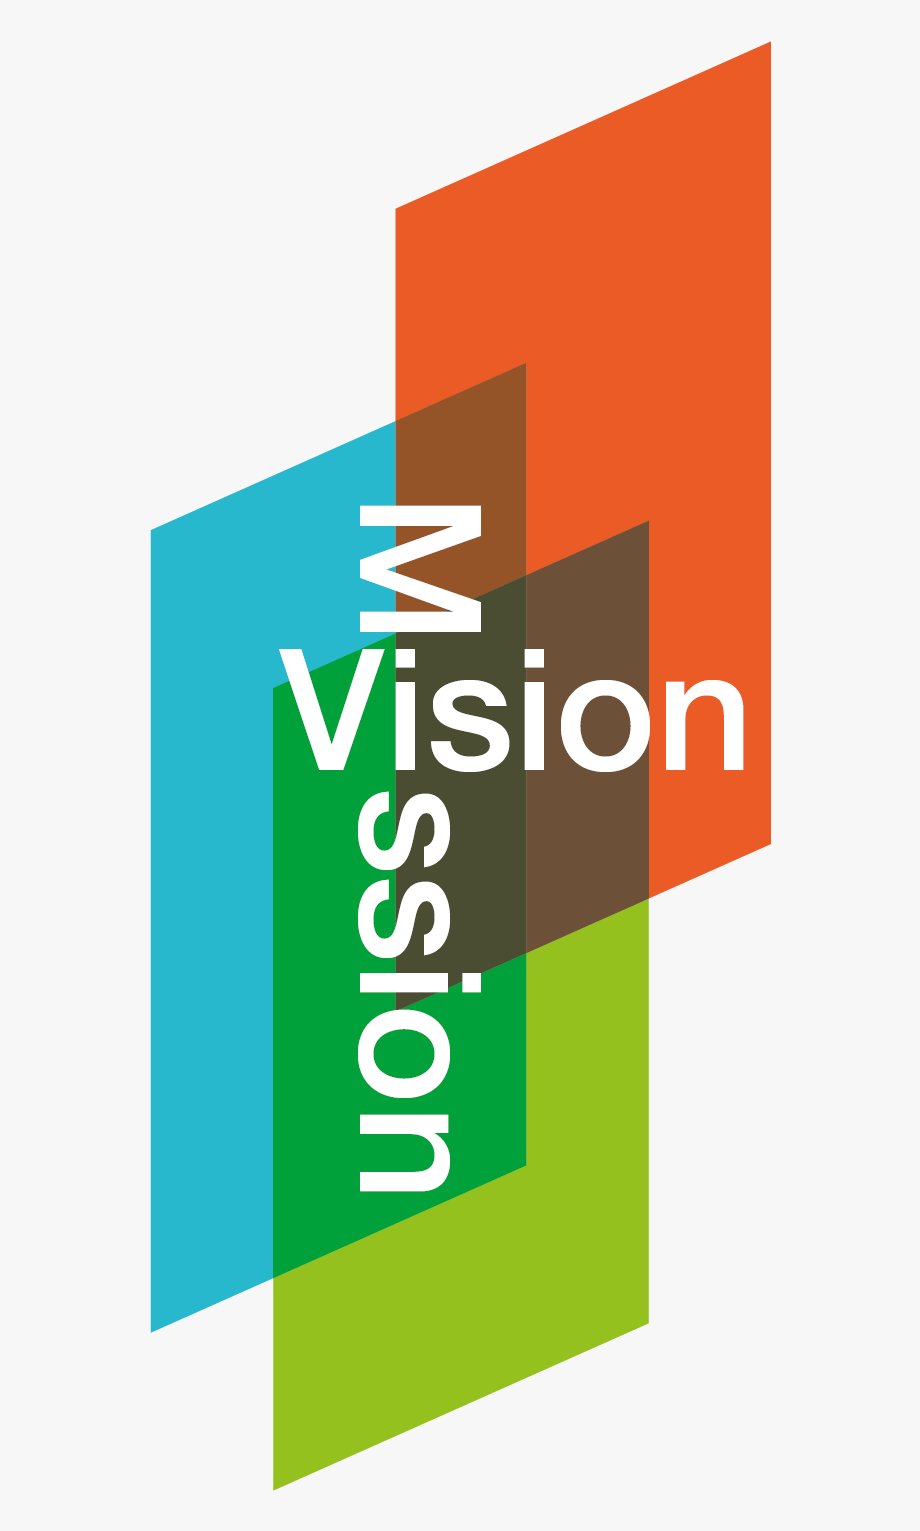 Mission and for presssalit. Future clipart company vision